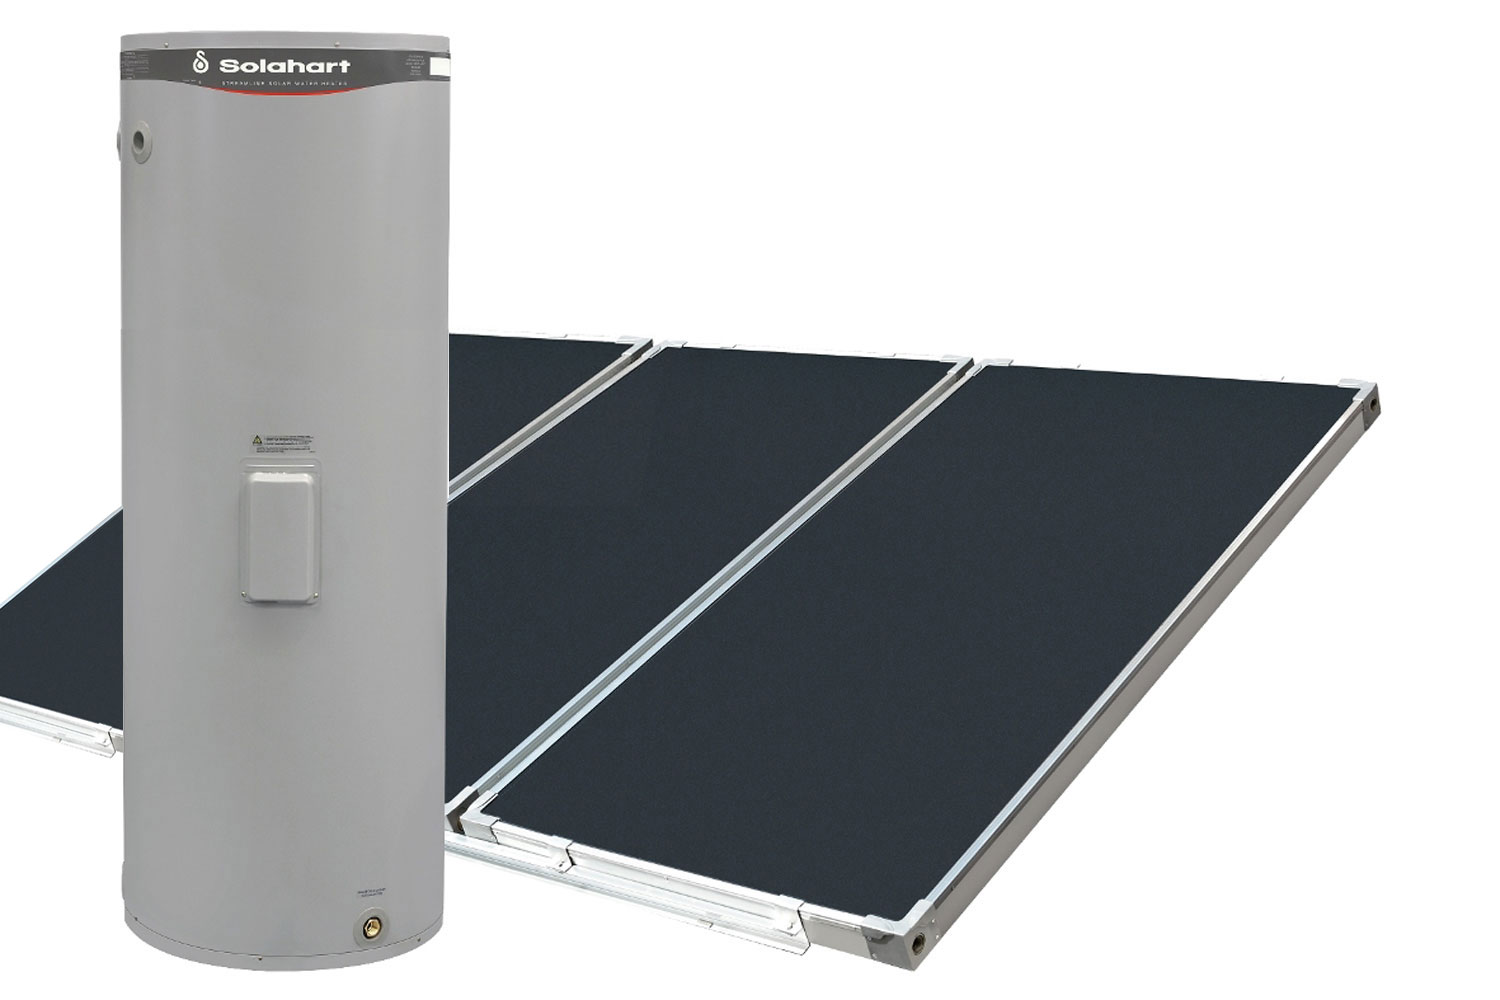 Solahart Split Solar Hot Water System Diagram Of An Active Pumped Heating Solaharts Heaters Are Designed To Give You The Maximum Flexibility Installation Locations Low Profile And Unobtrusive